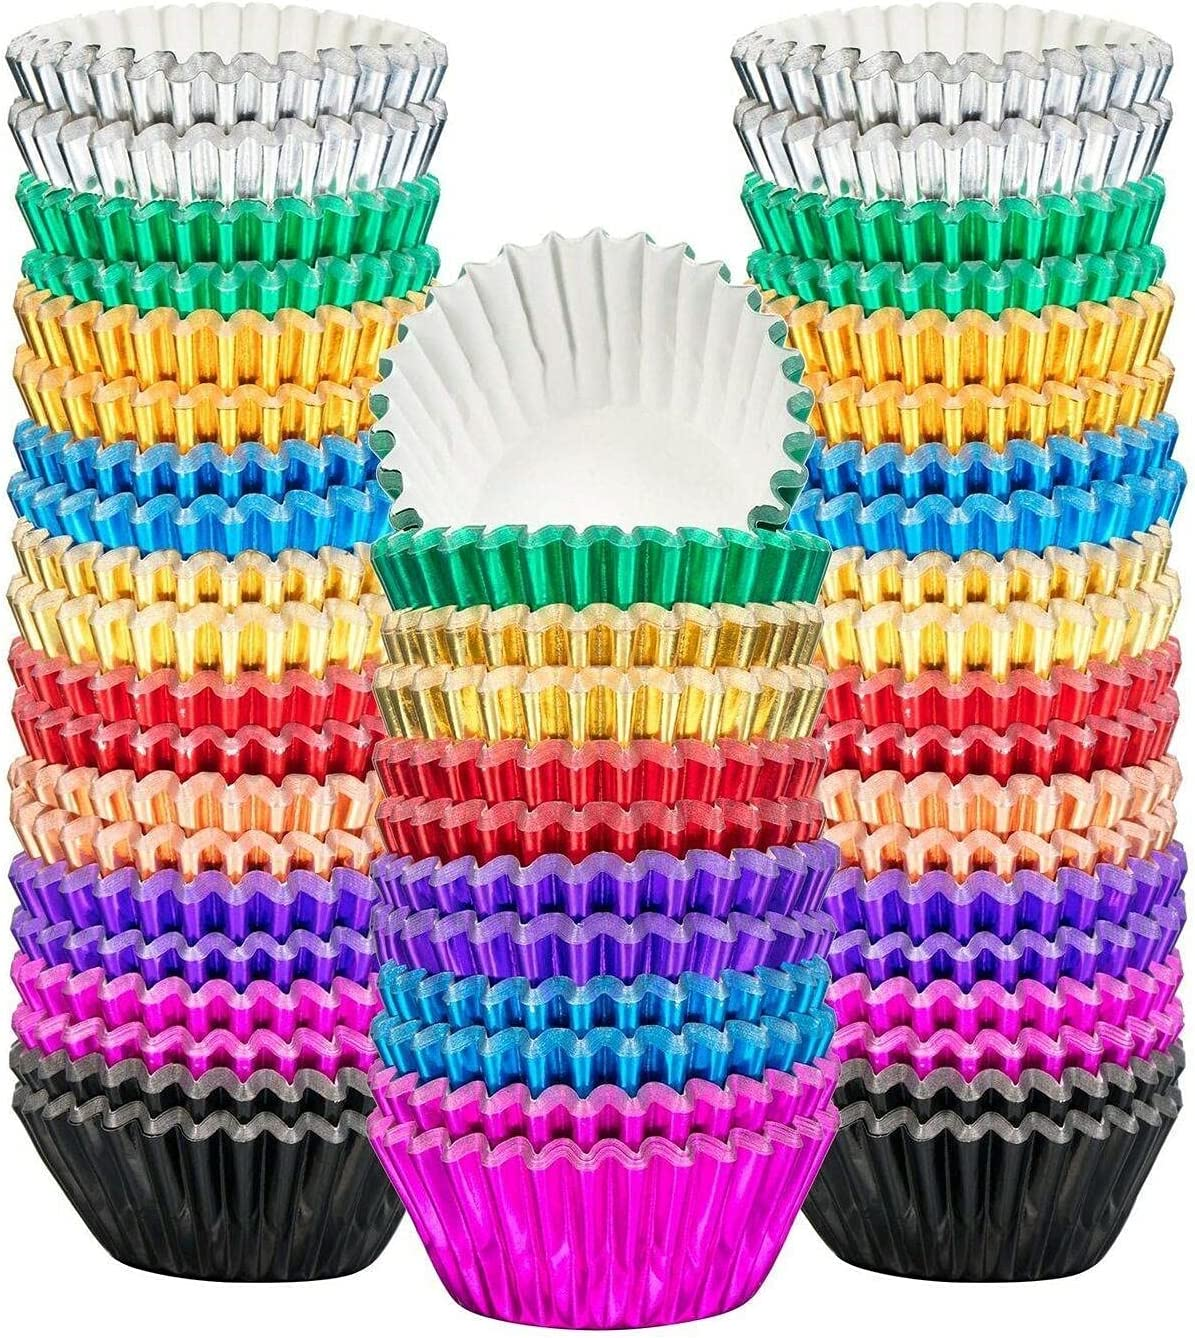 400 Wholesale Pieces Mini Cupcake Cup Cups Liners Baking Foil Cupca Popularity